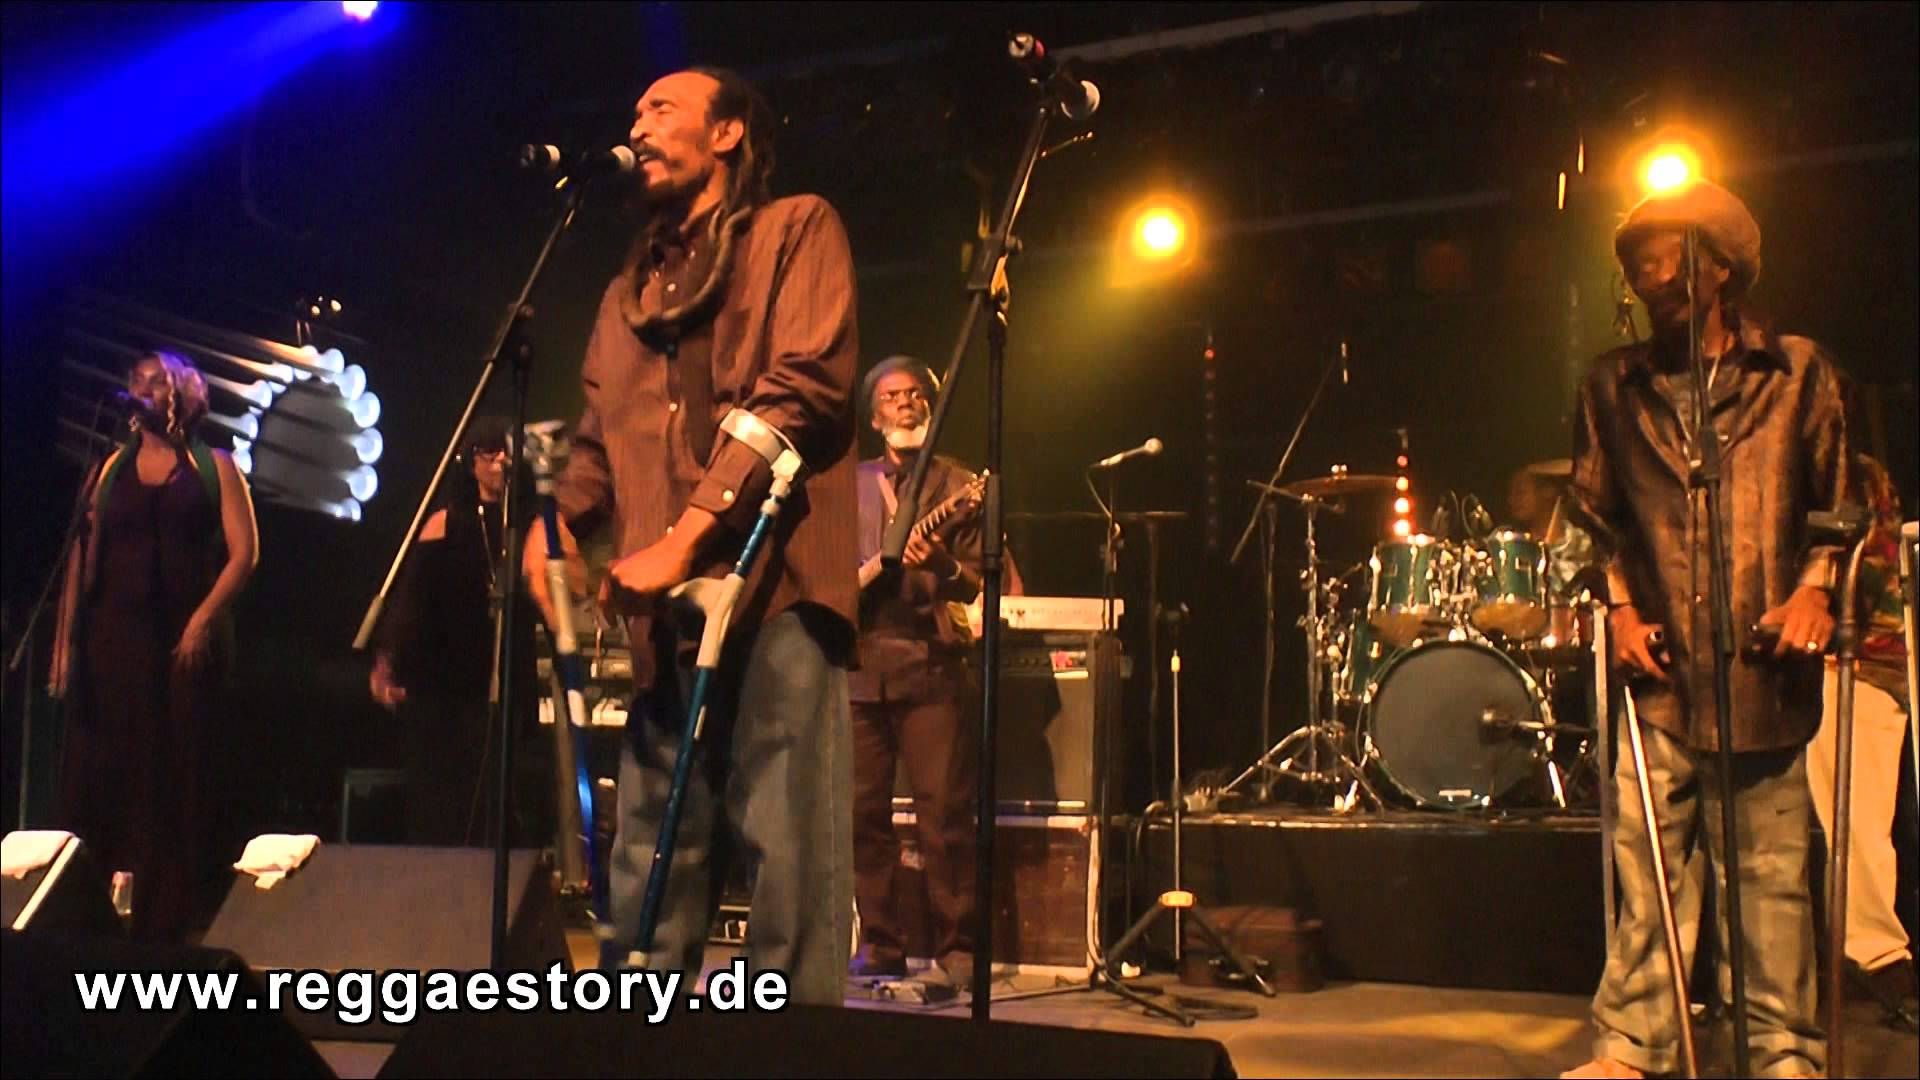 Israel Vibration in Berlin, Germany @ Yaam [6/9/2015]